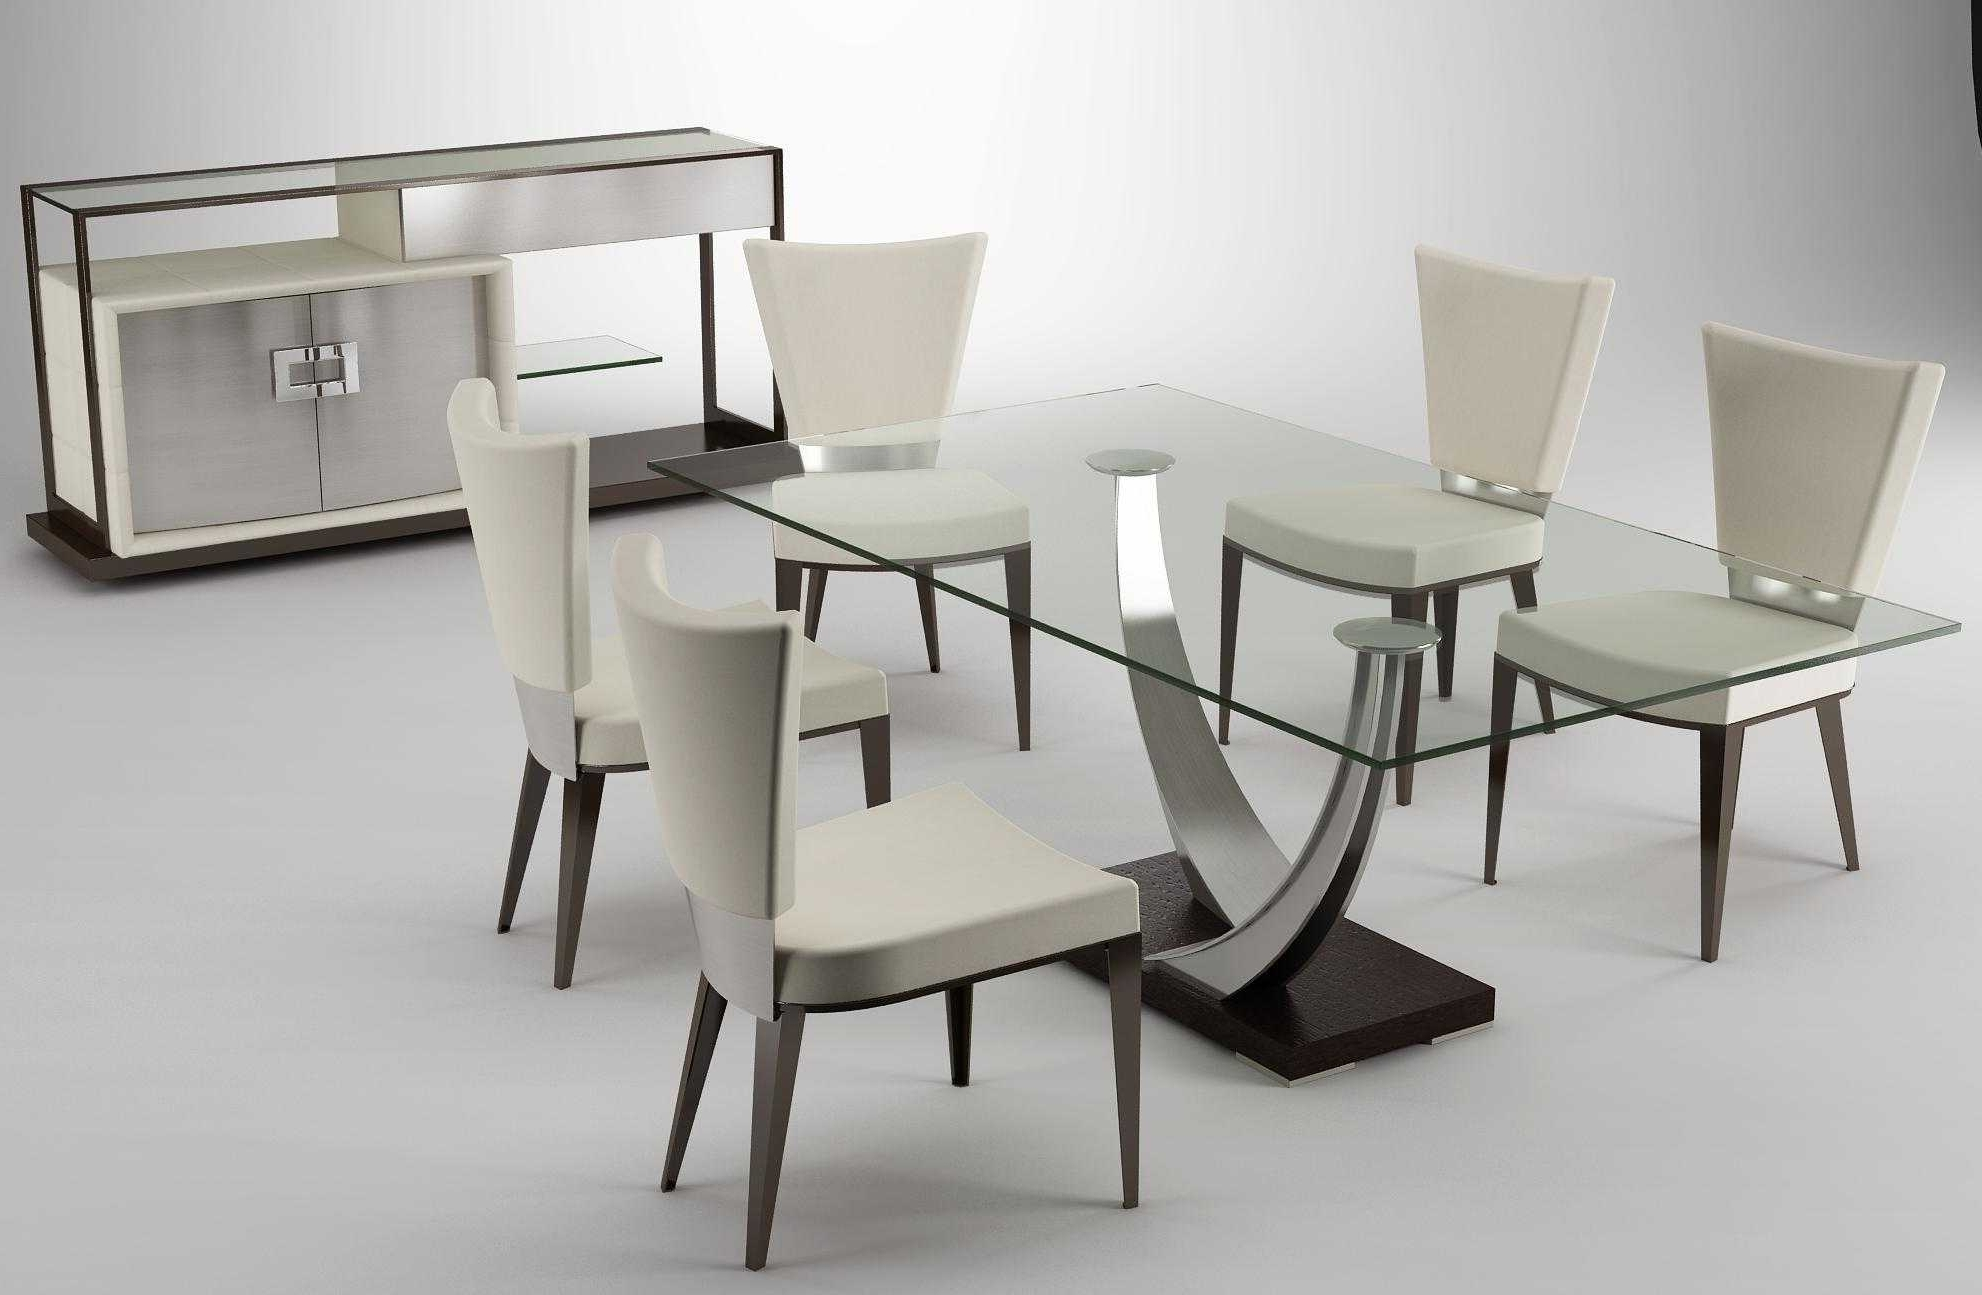 2017 Dining Room Contemporary Nook Dining Set Modern Glass Dining Table pertaining to Contemporary Dining Room Chairs